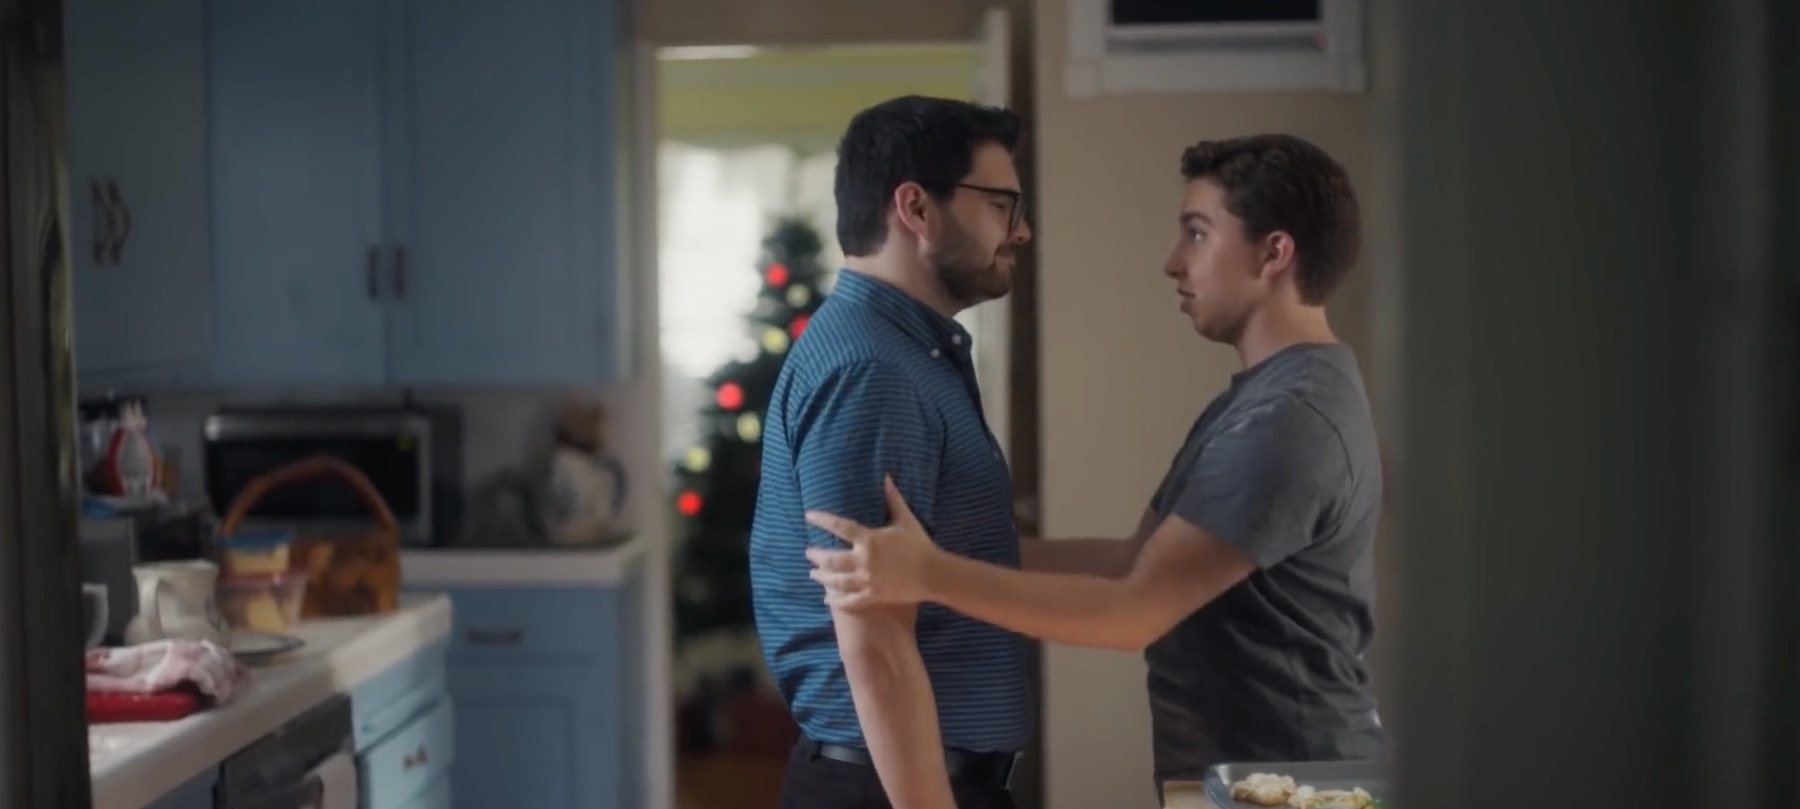 Pantene's 2019 holiday ads feature transgender people like Steven H.